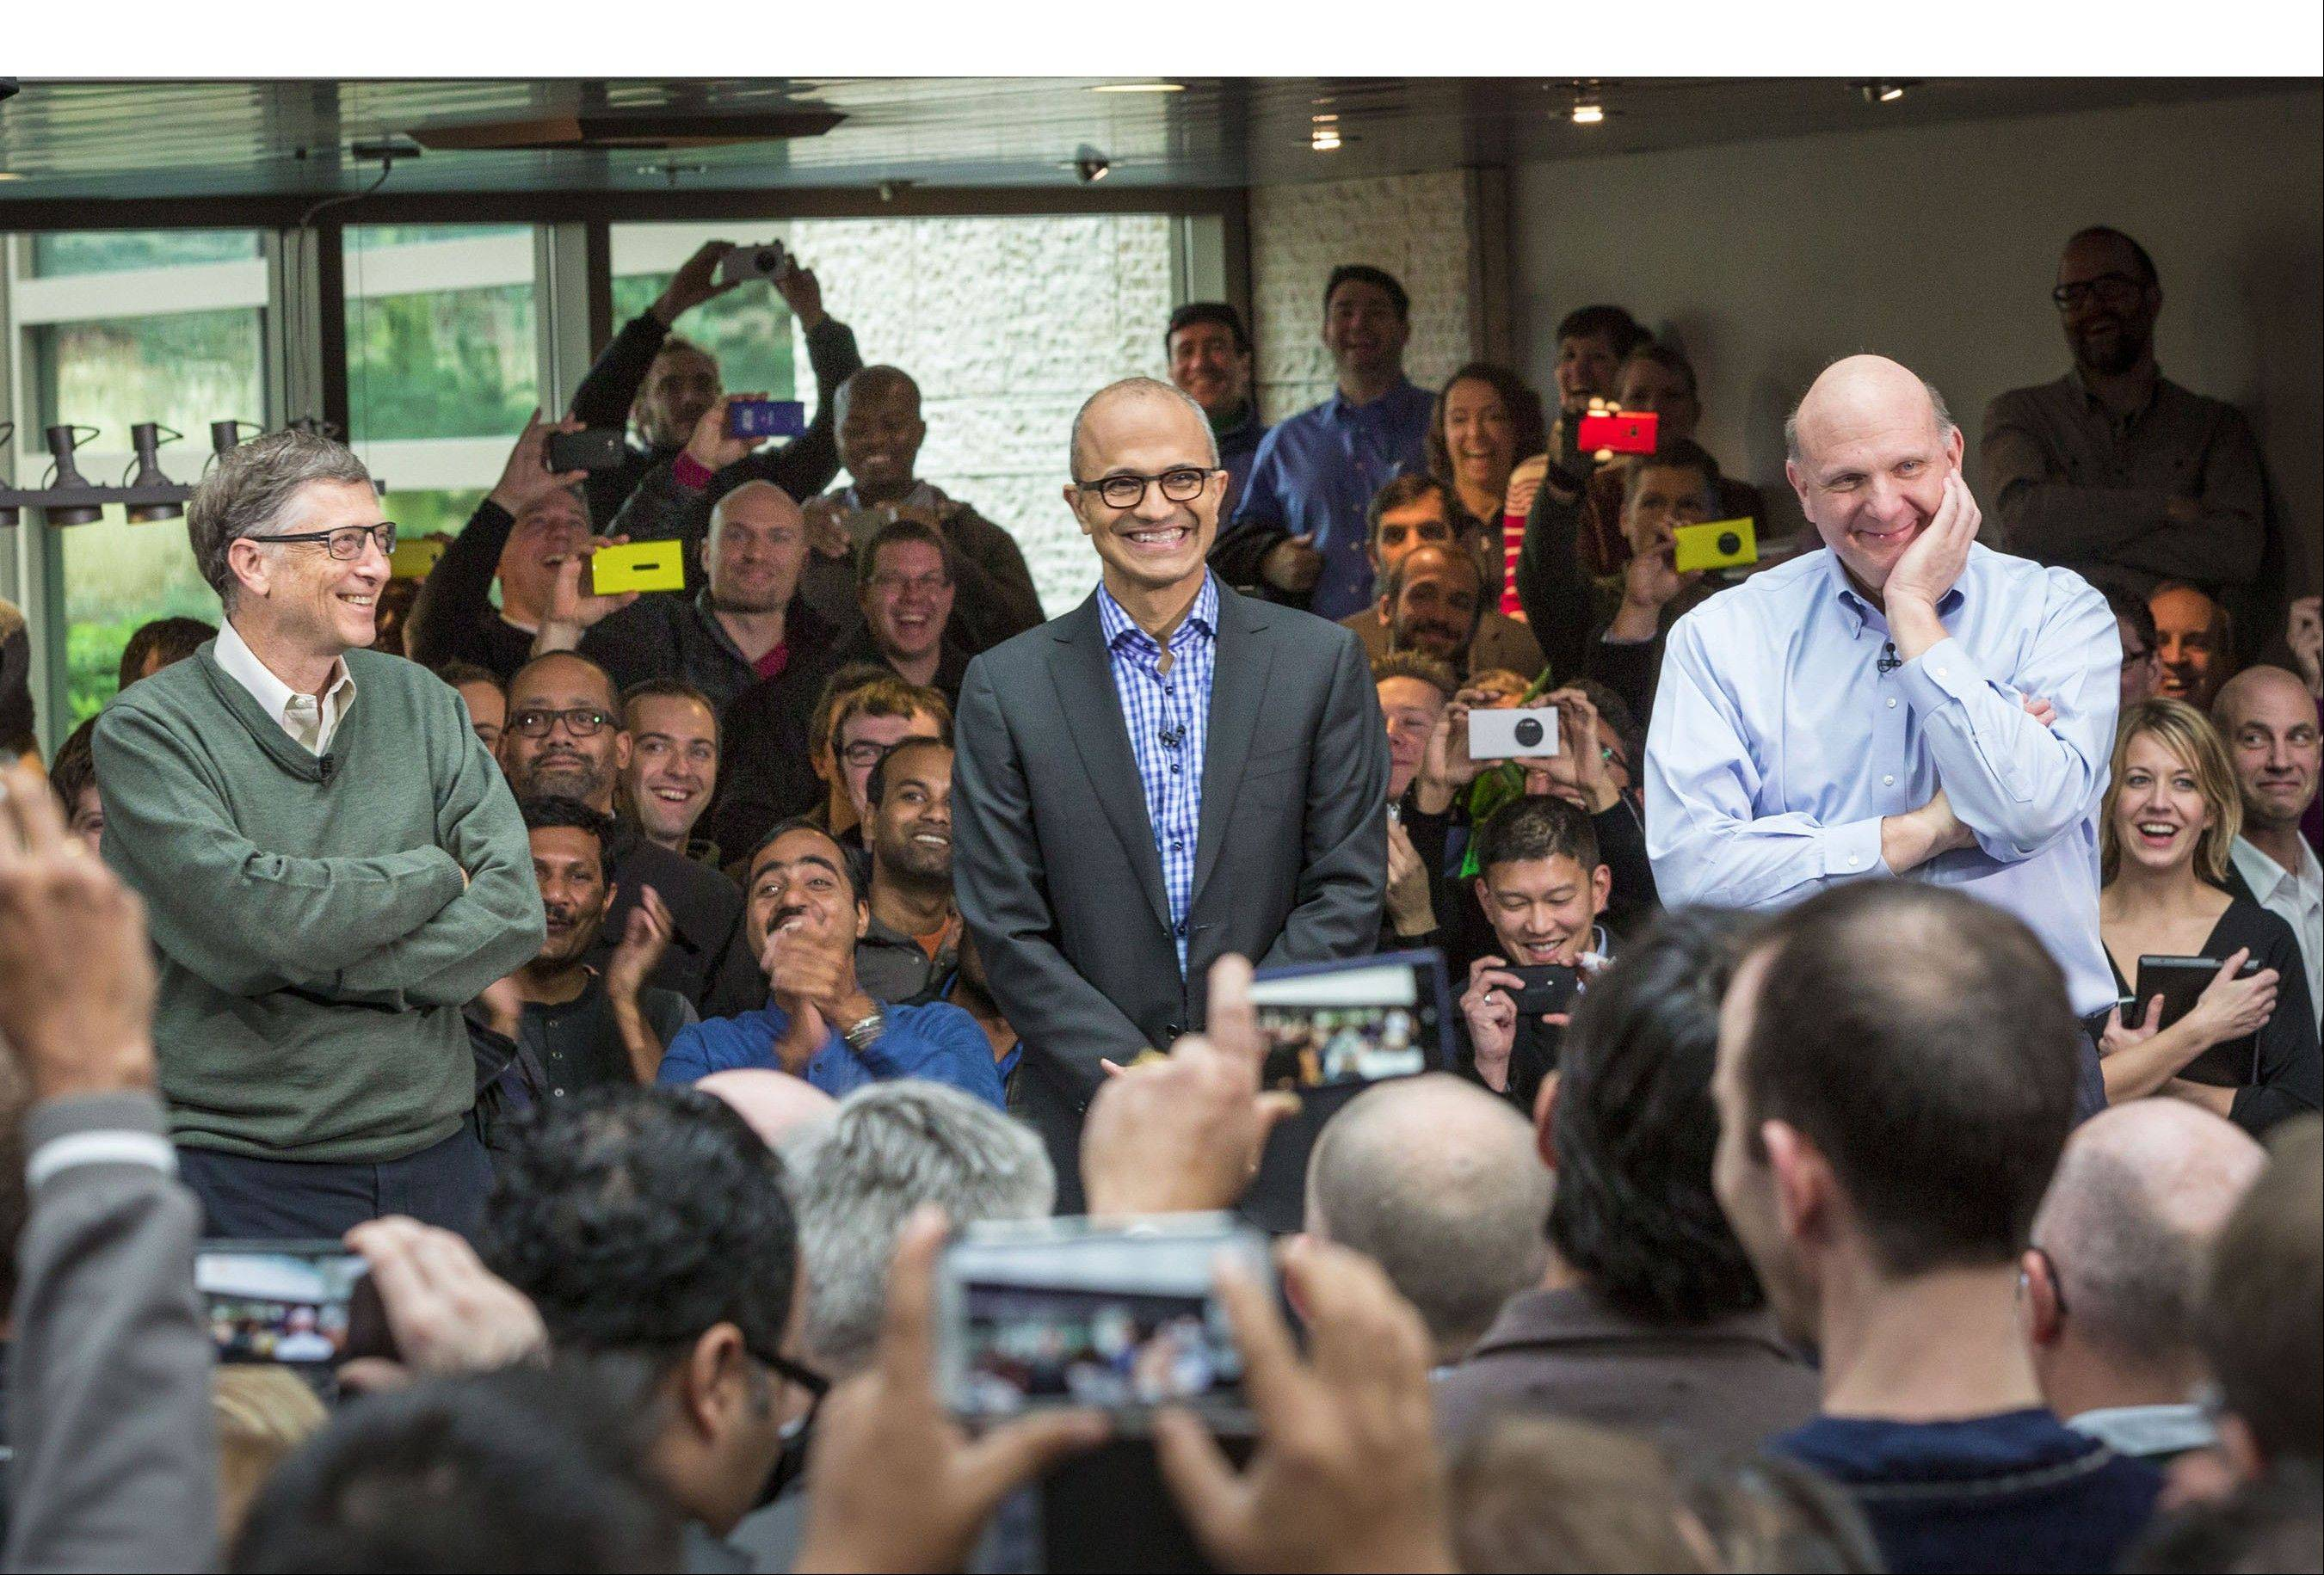 Satya Nadella, Microsoft�s new CEO, addresses employees along with Bill Gates and Steve Ballmer on the company�s Redmond, Wash., campus.